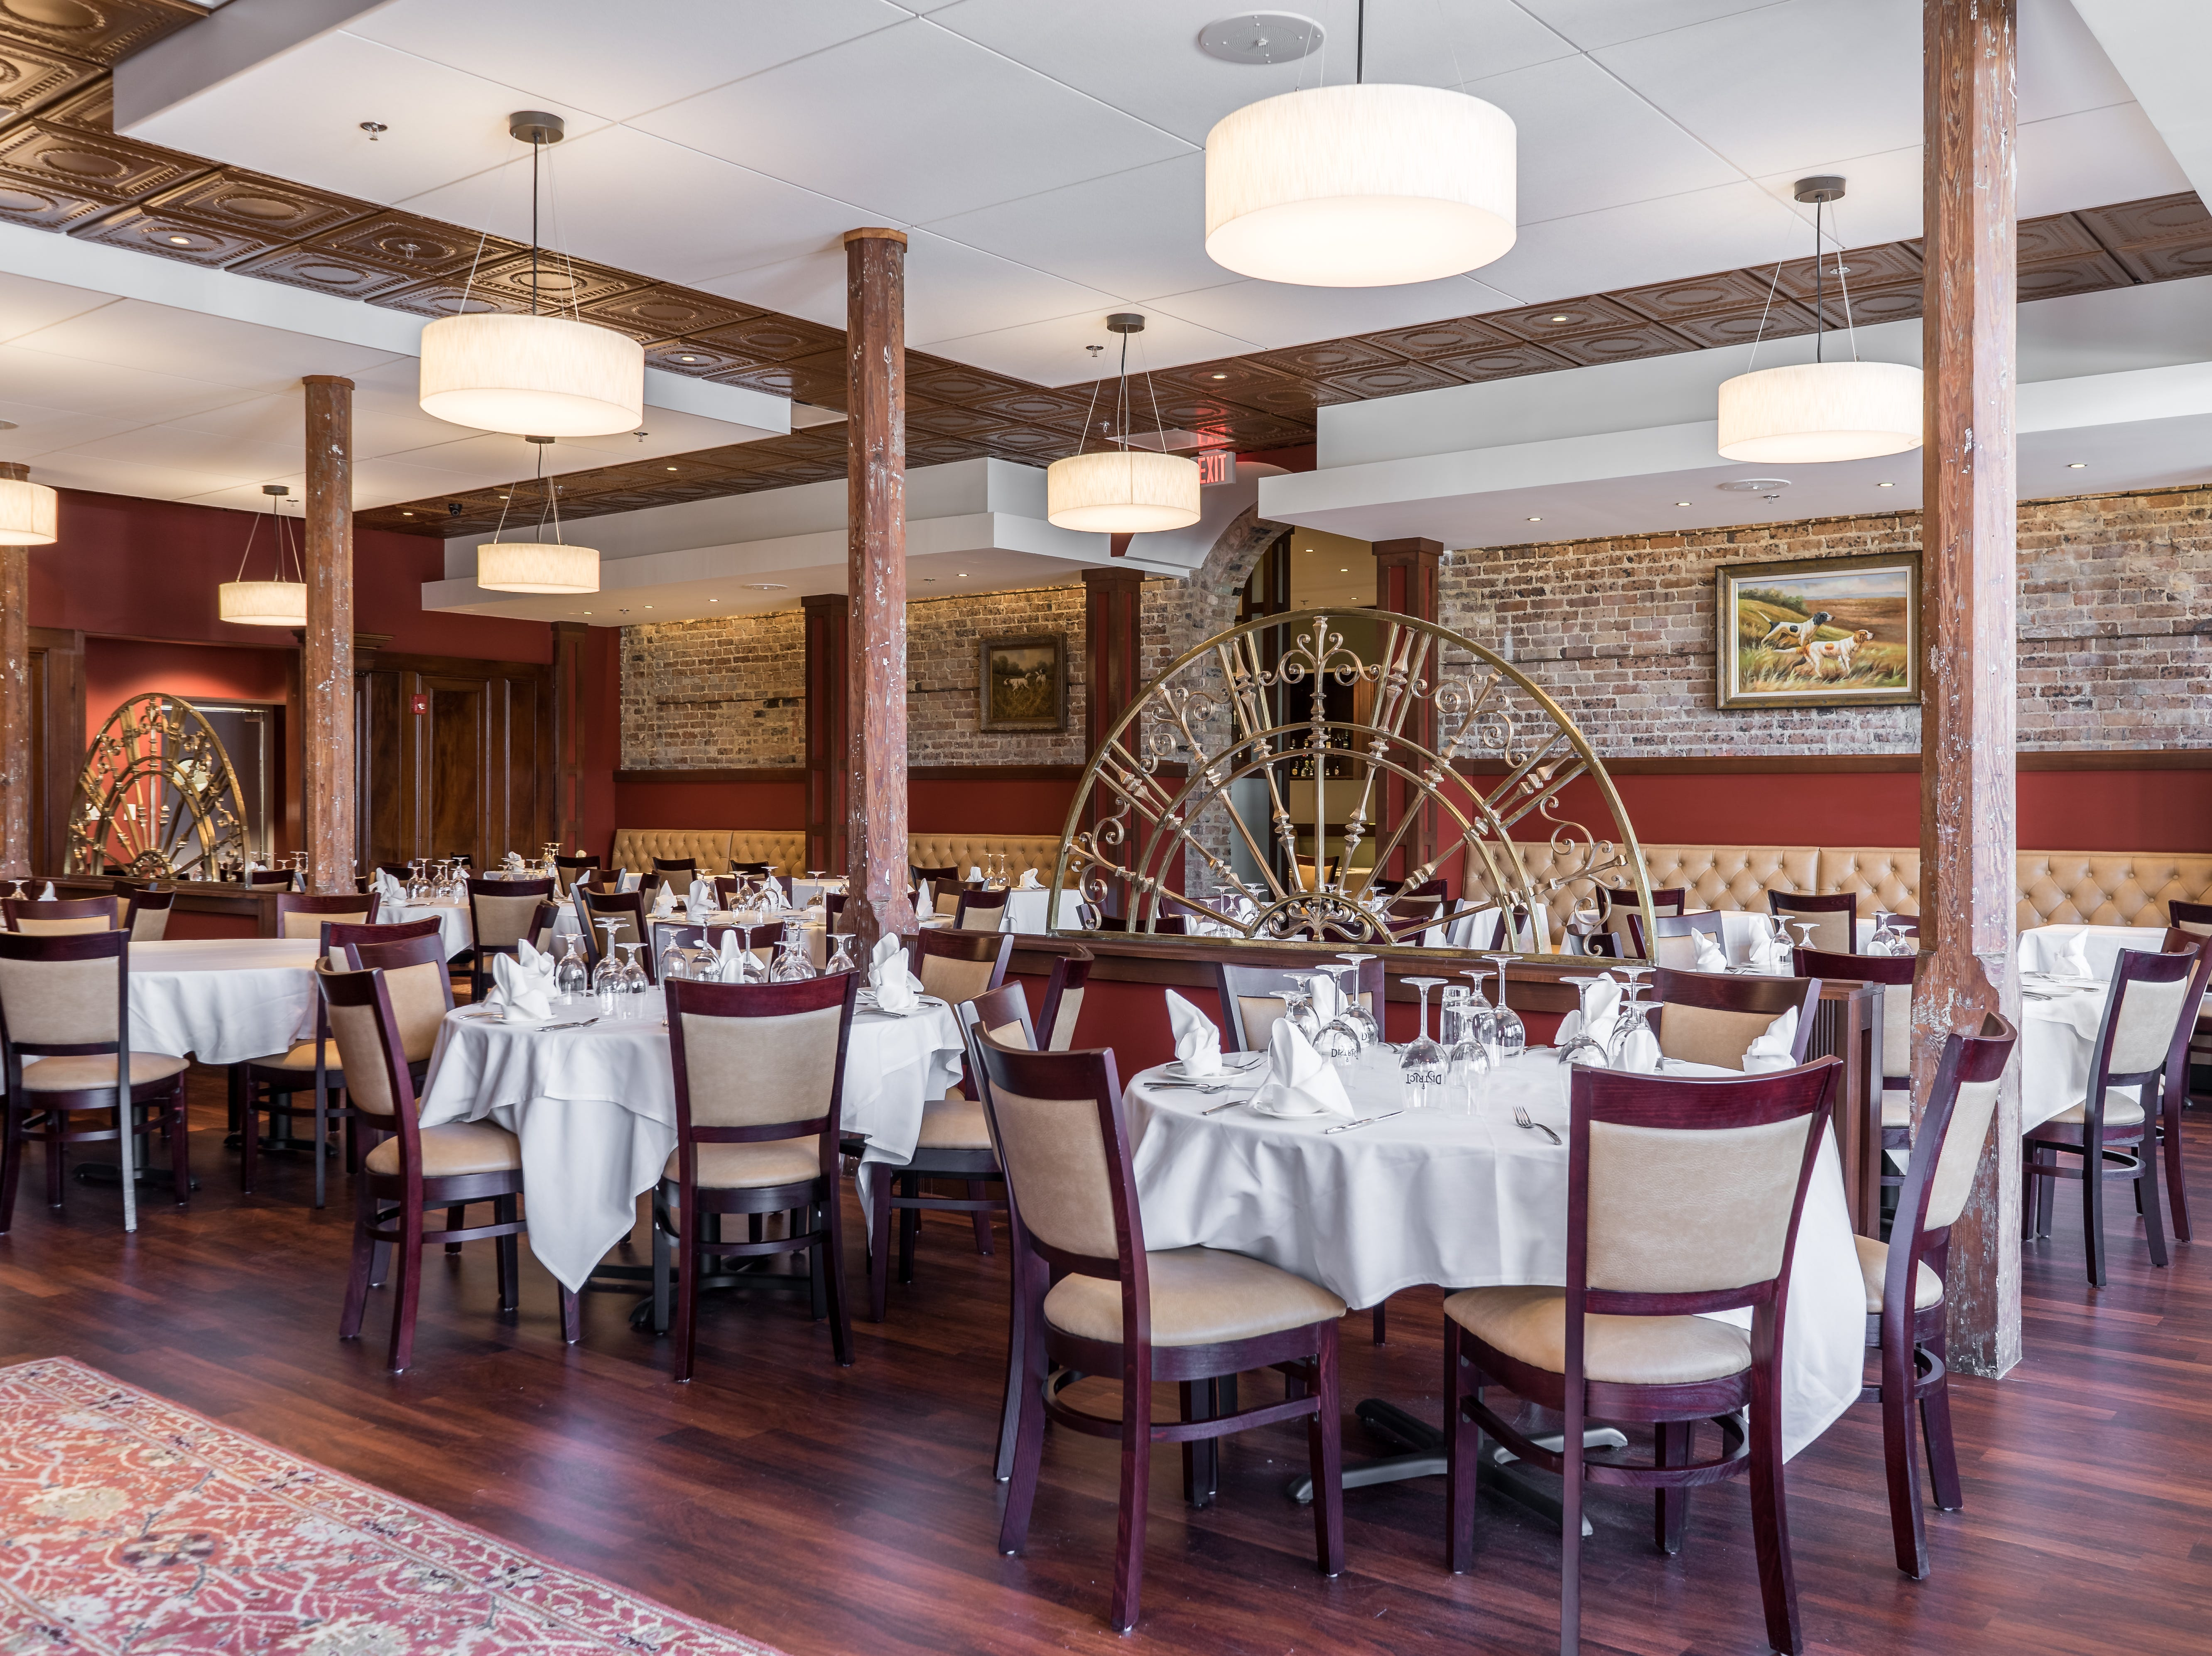 The District steak and seafood restaurant is hosting its grand opening Aug. 9, 2018.